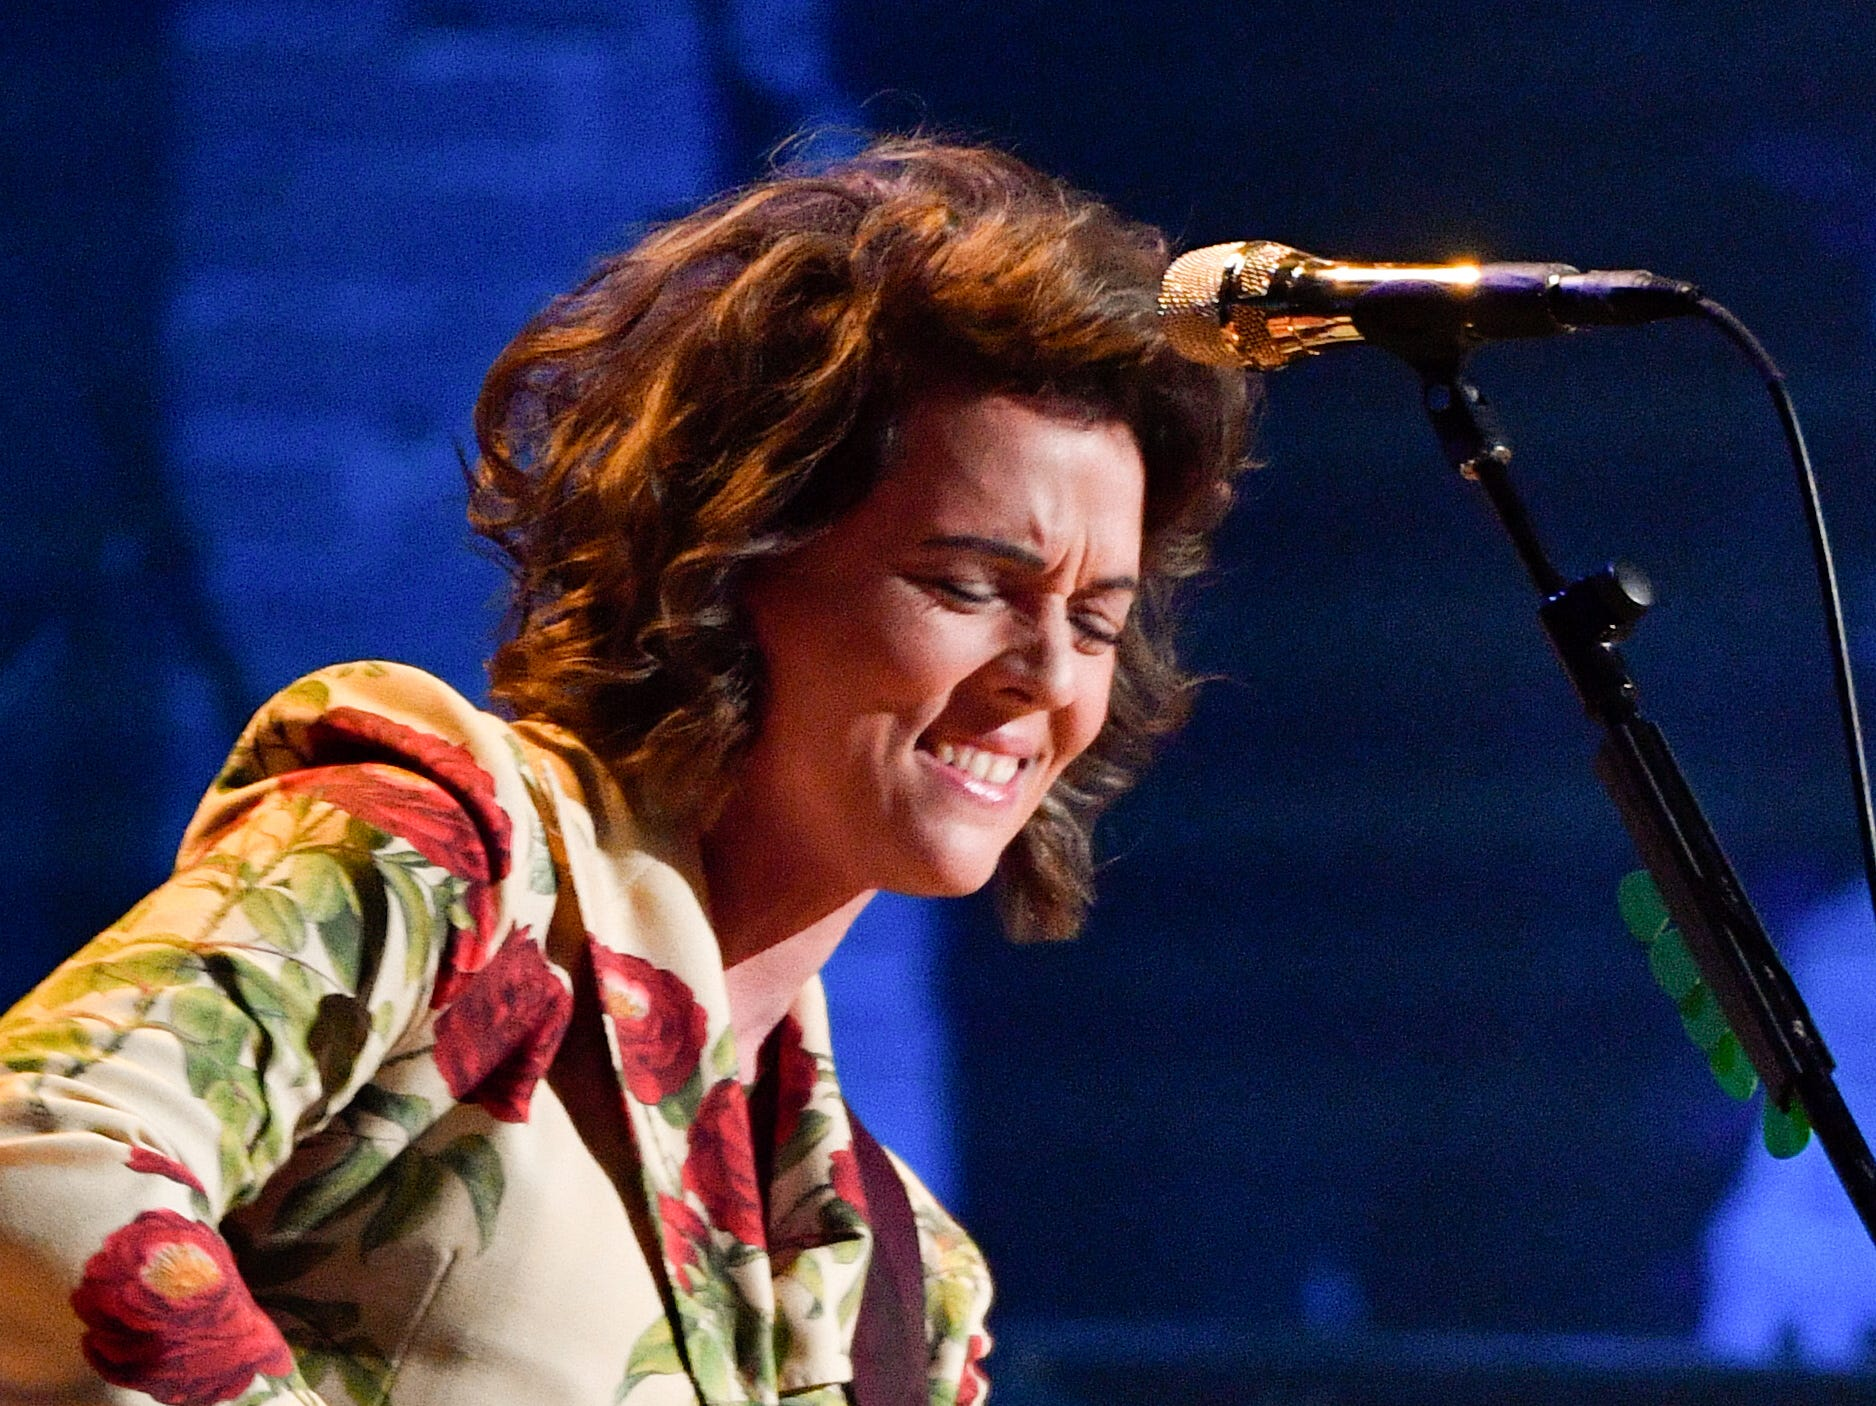 Brandi Carlile performs during the 2018 Americana Honors and Awards show at the Ryman Auditorium in Nashville, Tenn., Wednesday, Sept. 12, 2018.